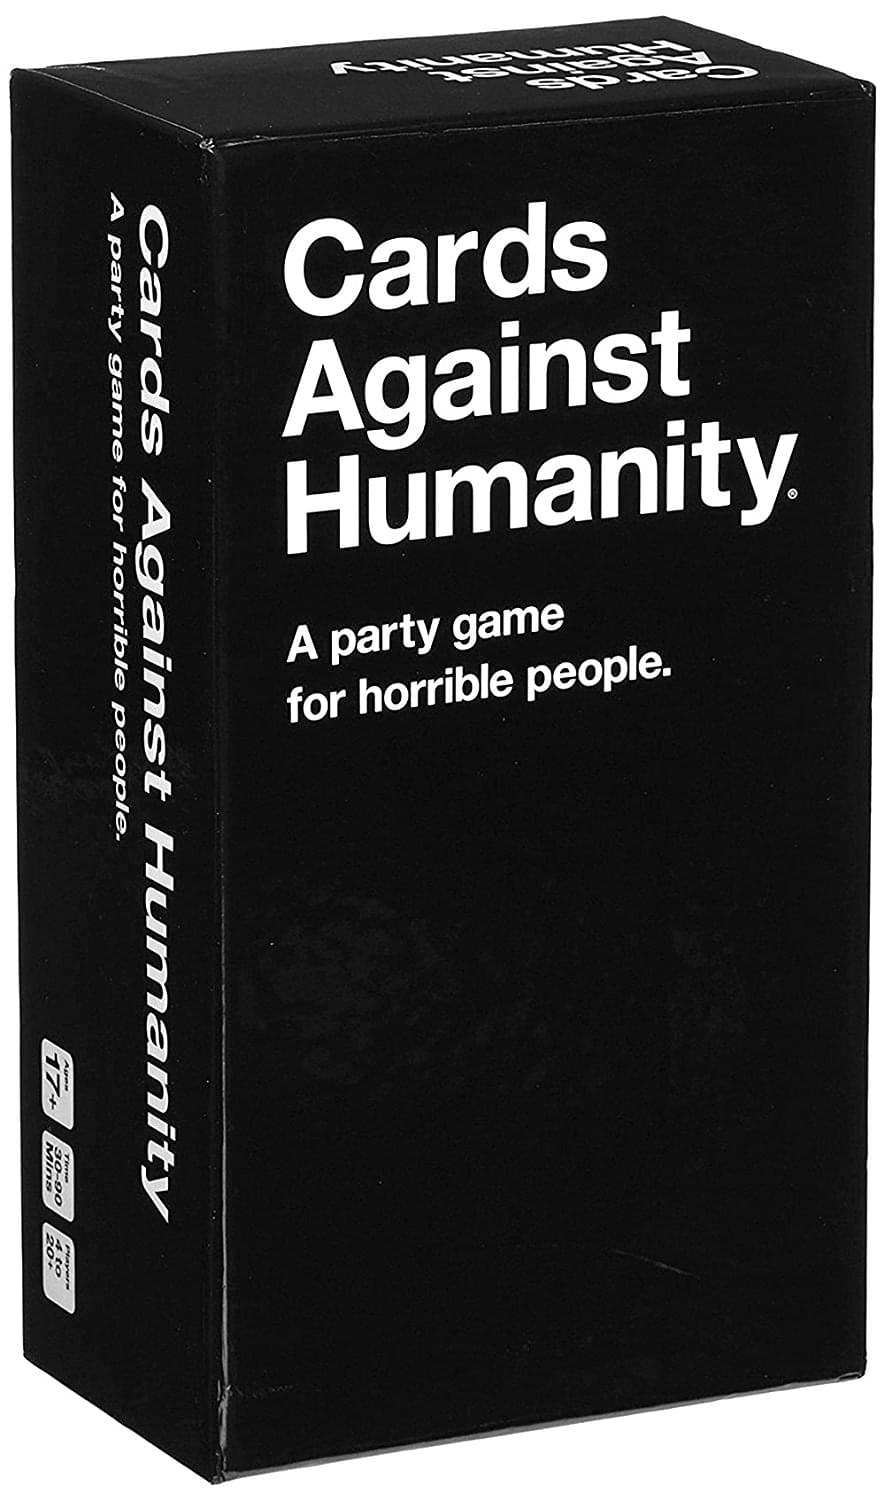 Cards Against Humanity Looking For Card Writers